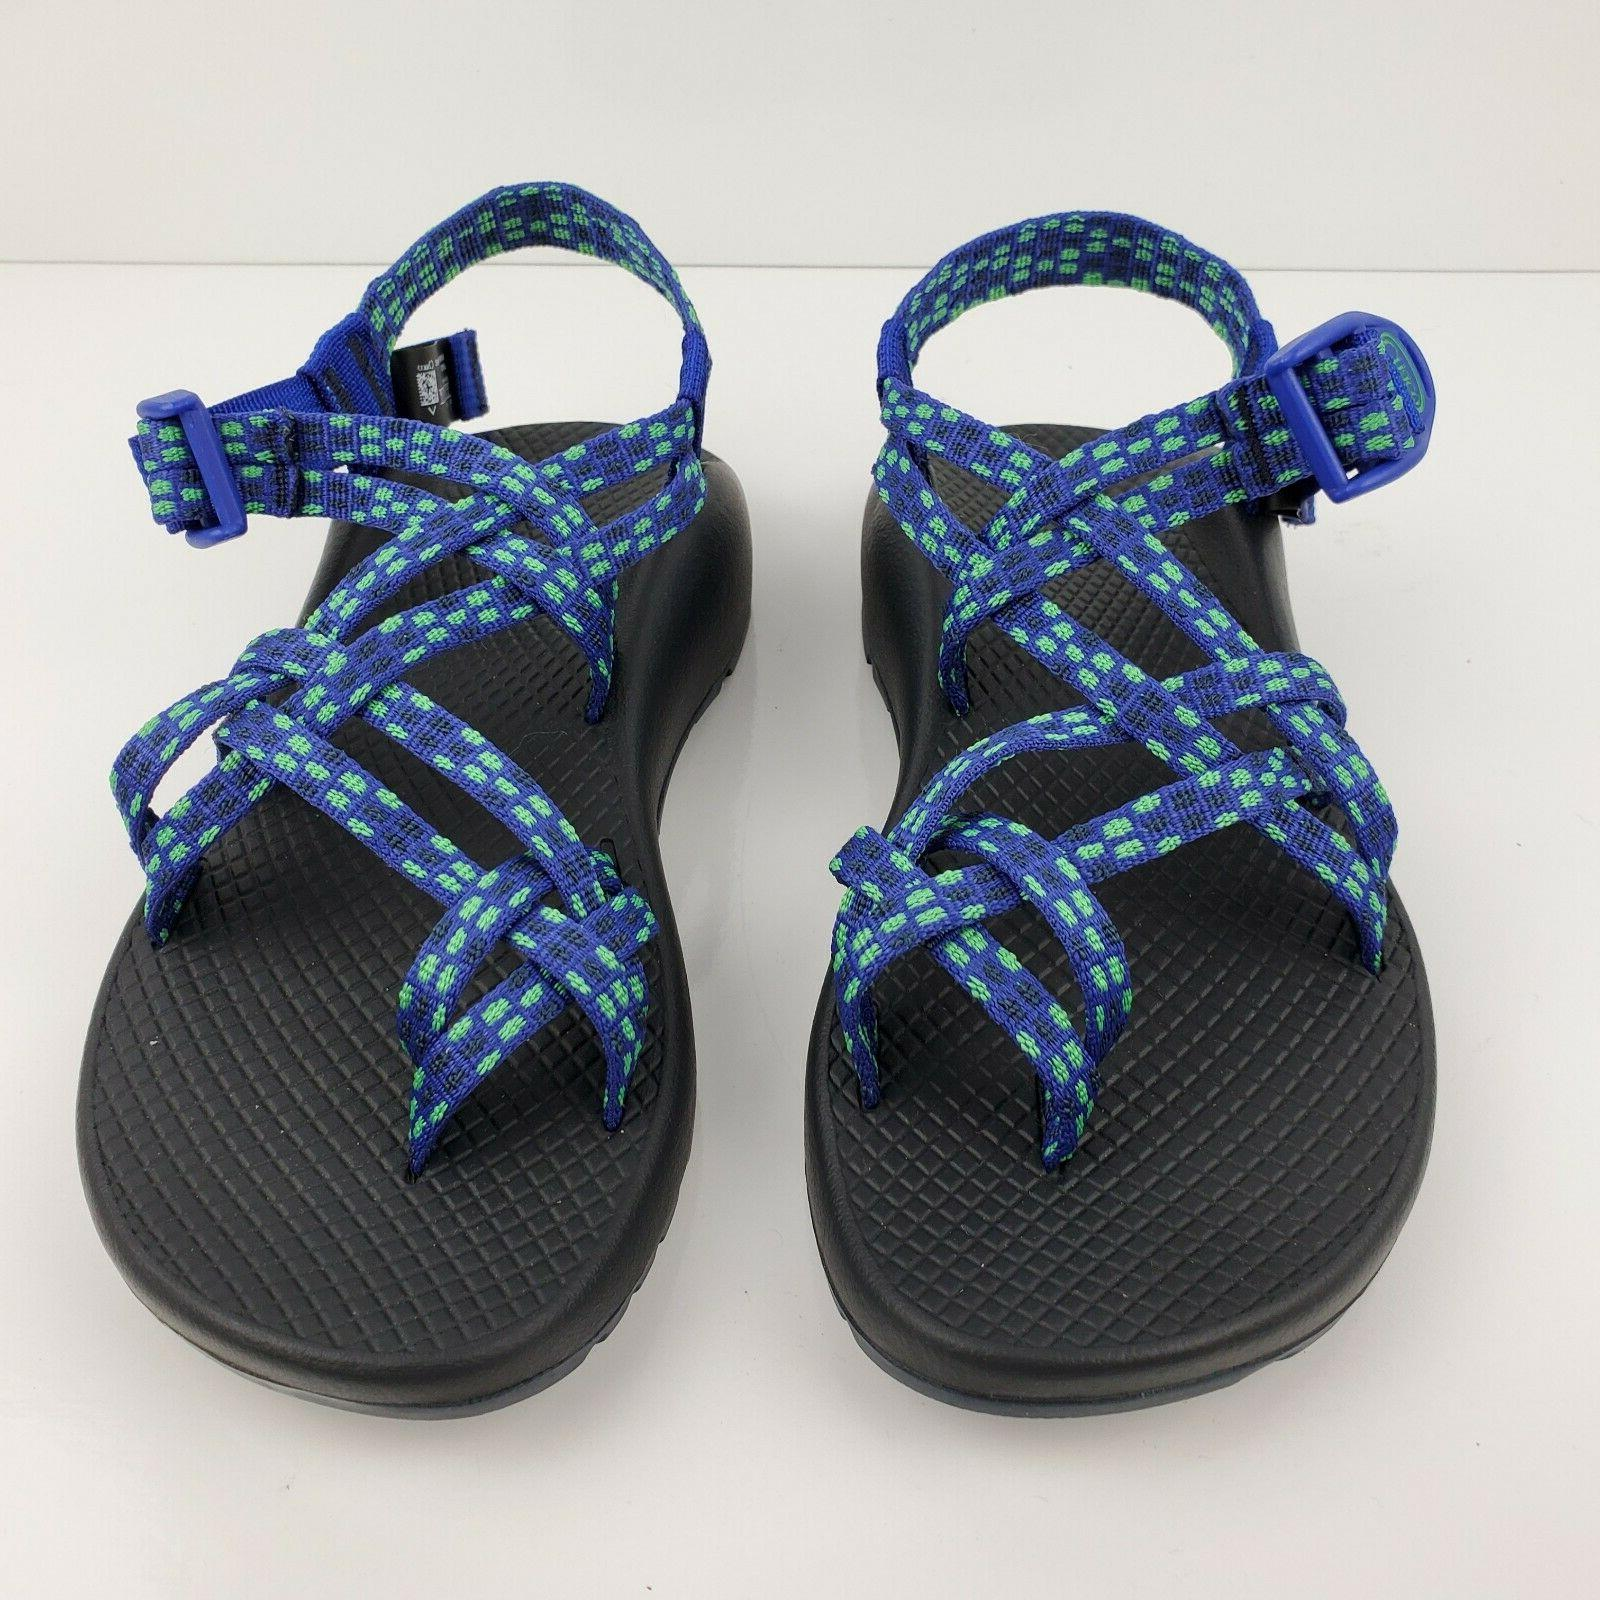 Chaco Sandals Women's Royal Hiking Shoes NEW